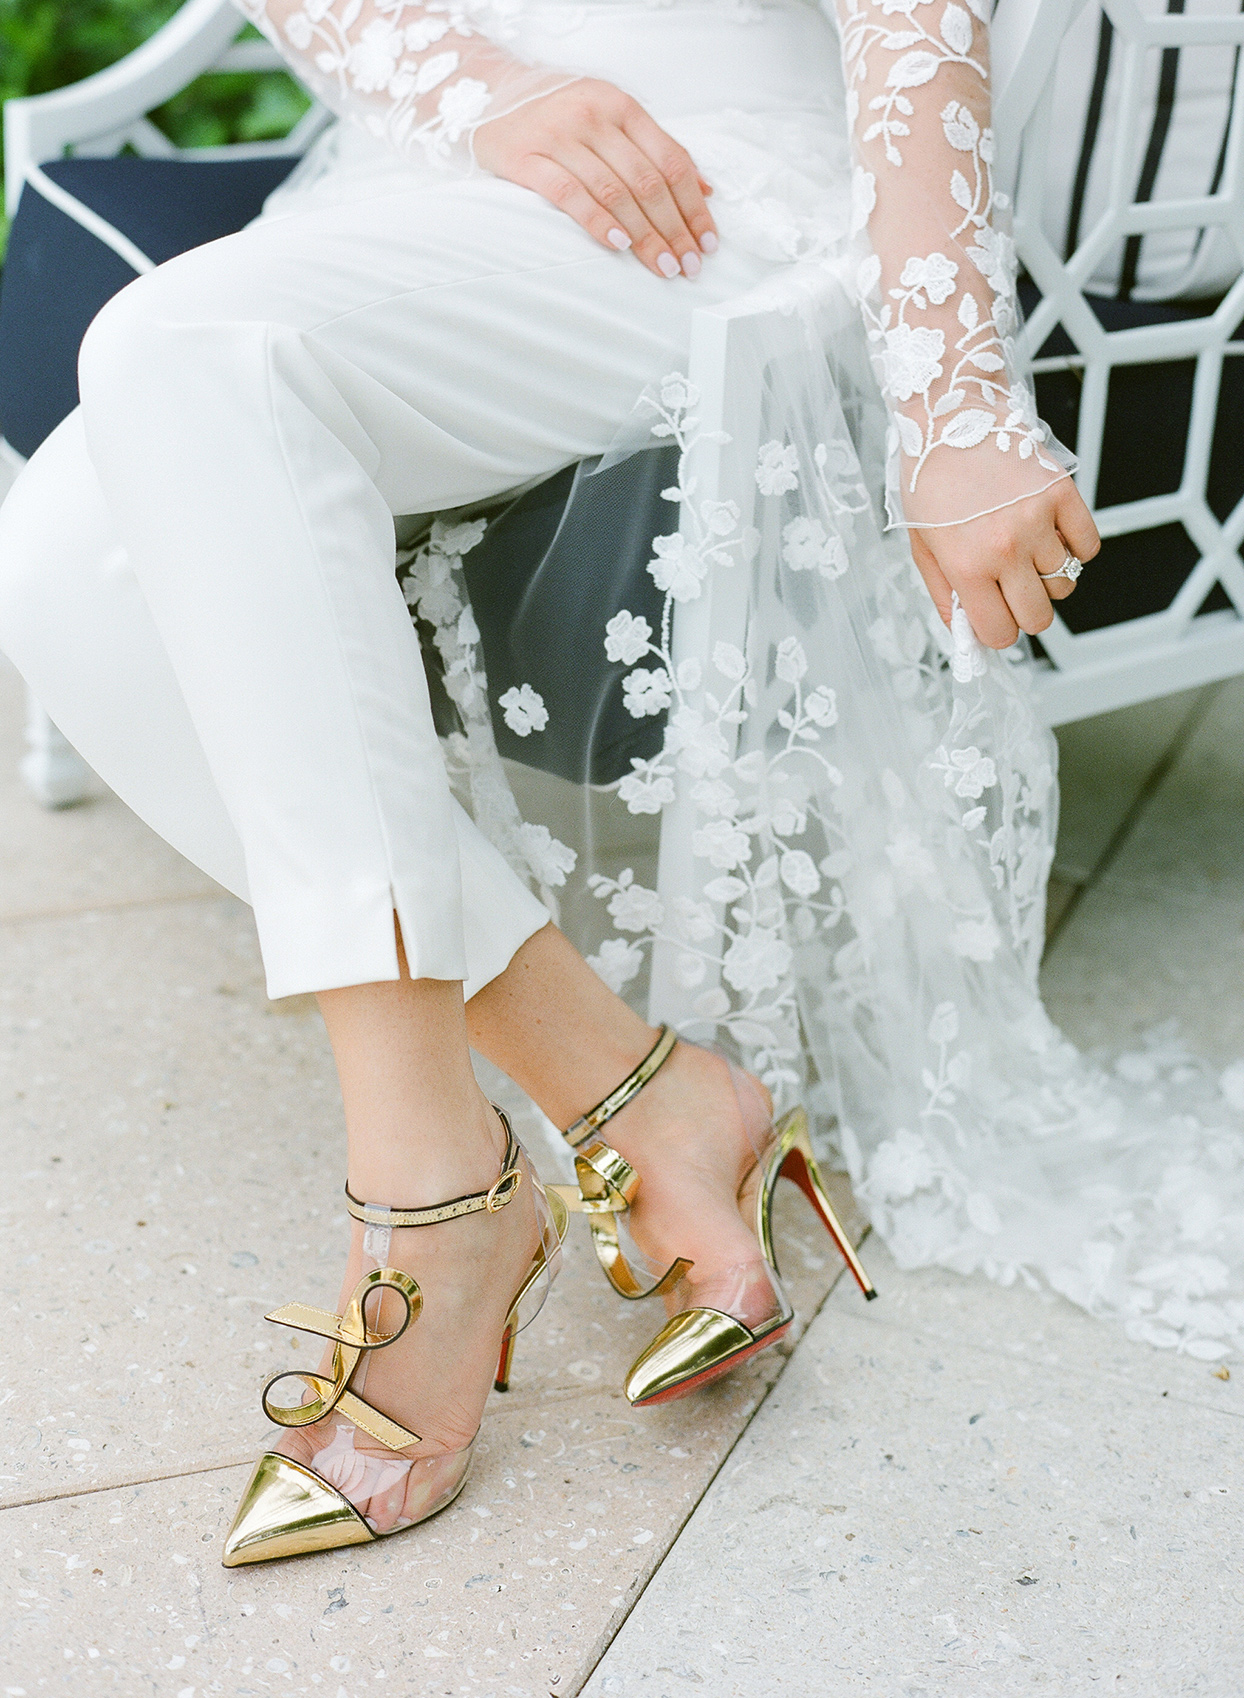 bride sitting in white romper and gold shoes during rehearsal dinner